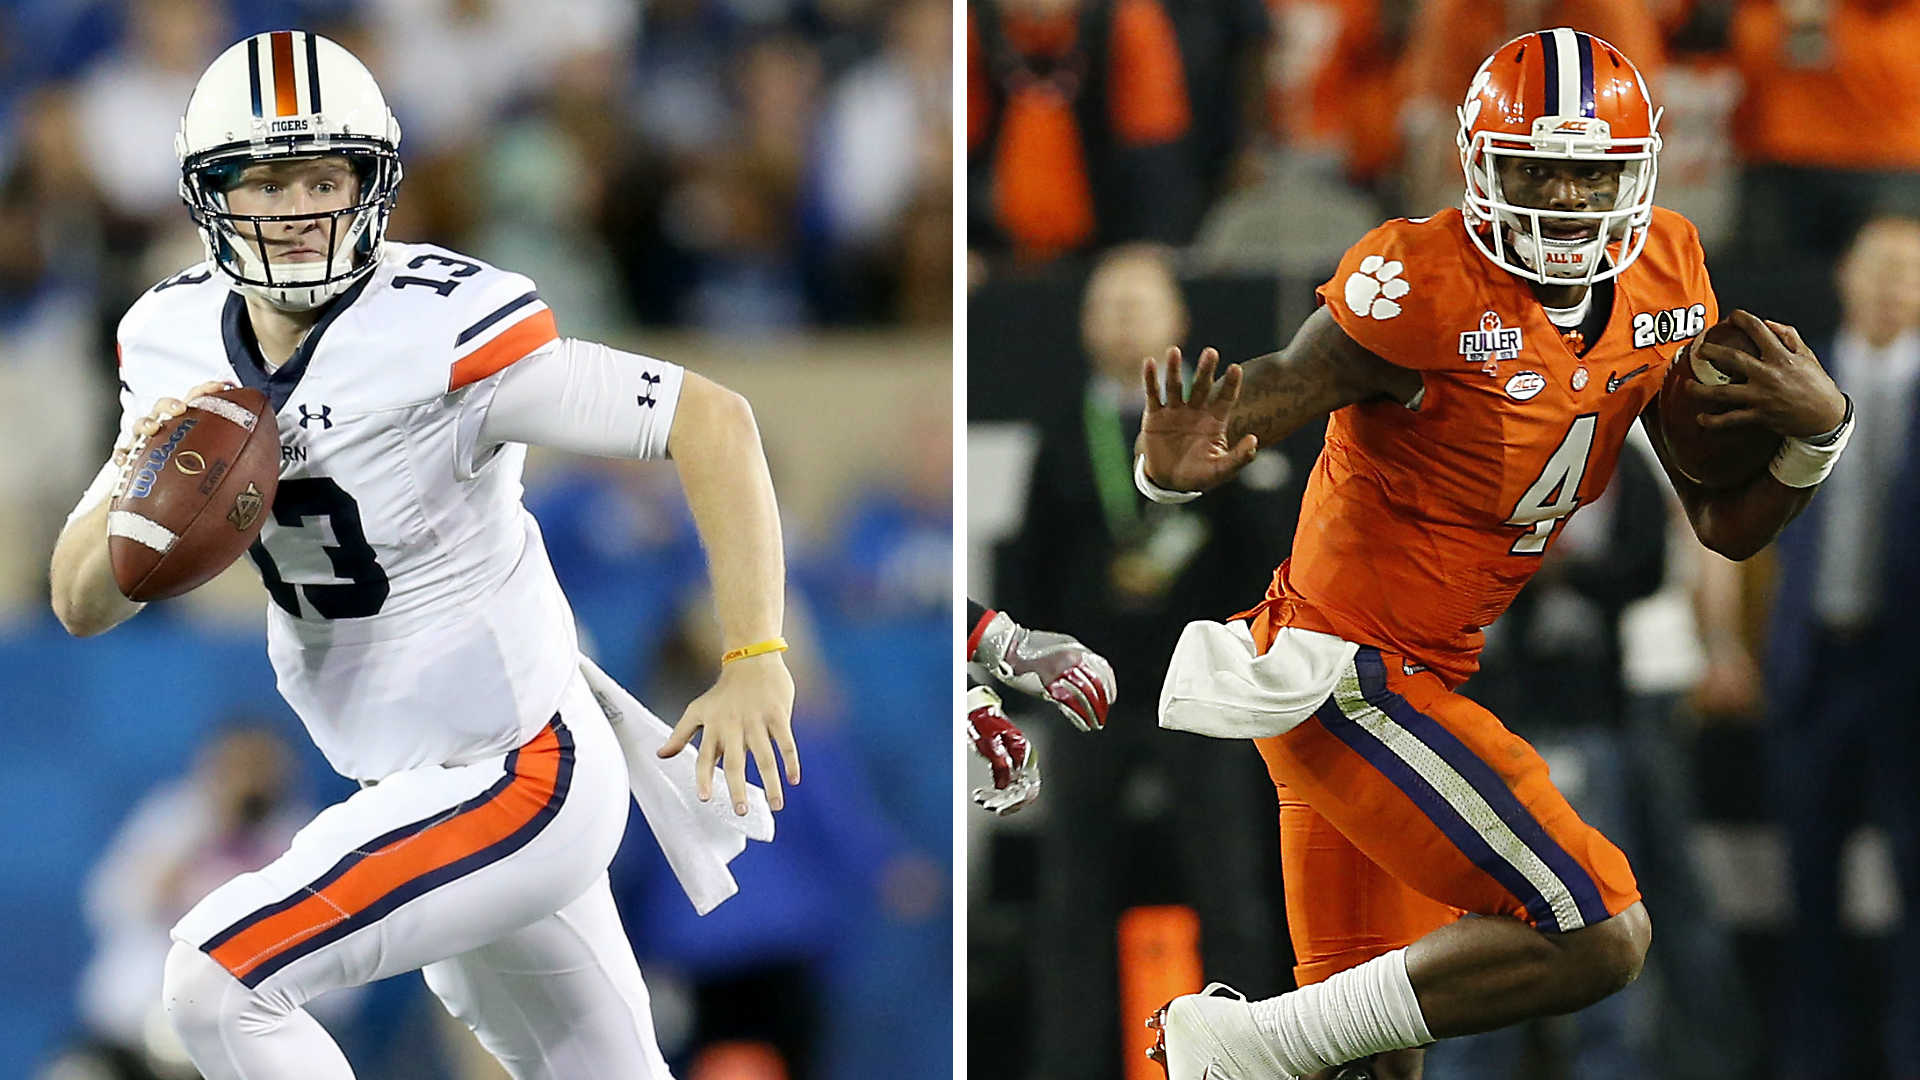 Clemson vs. Auburn: Time, date, how to watch | NCAA ...